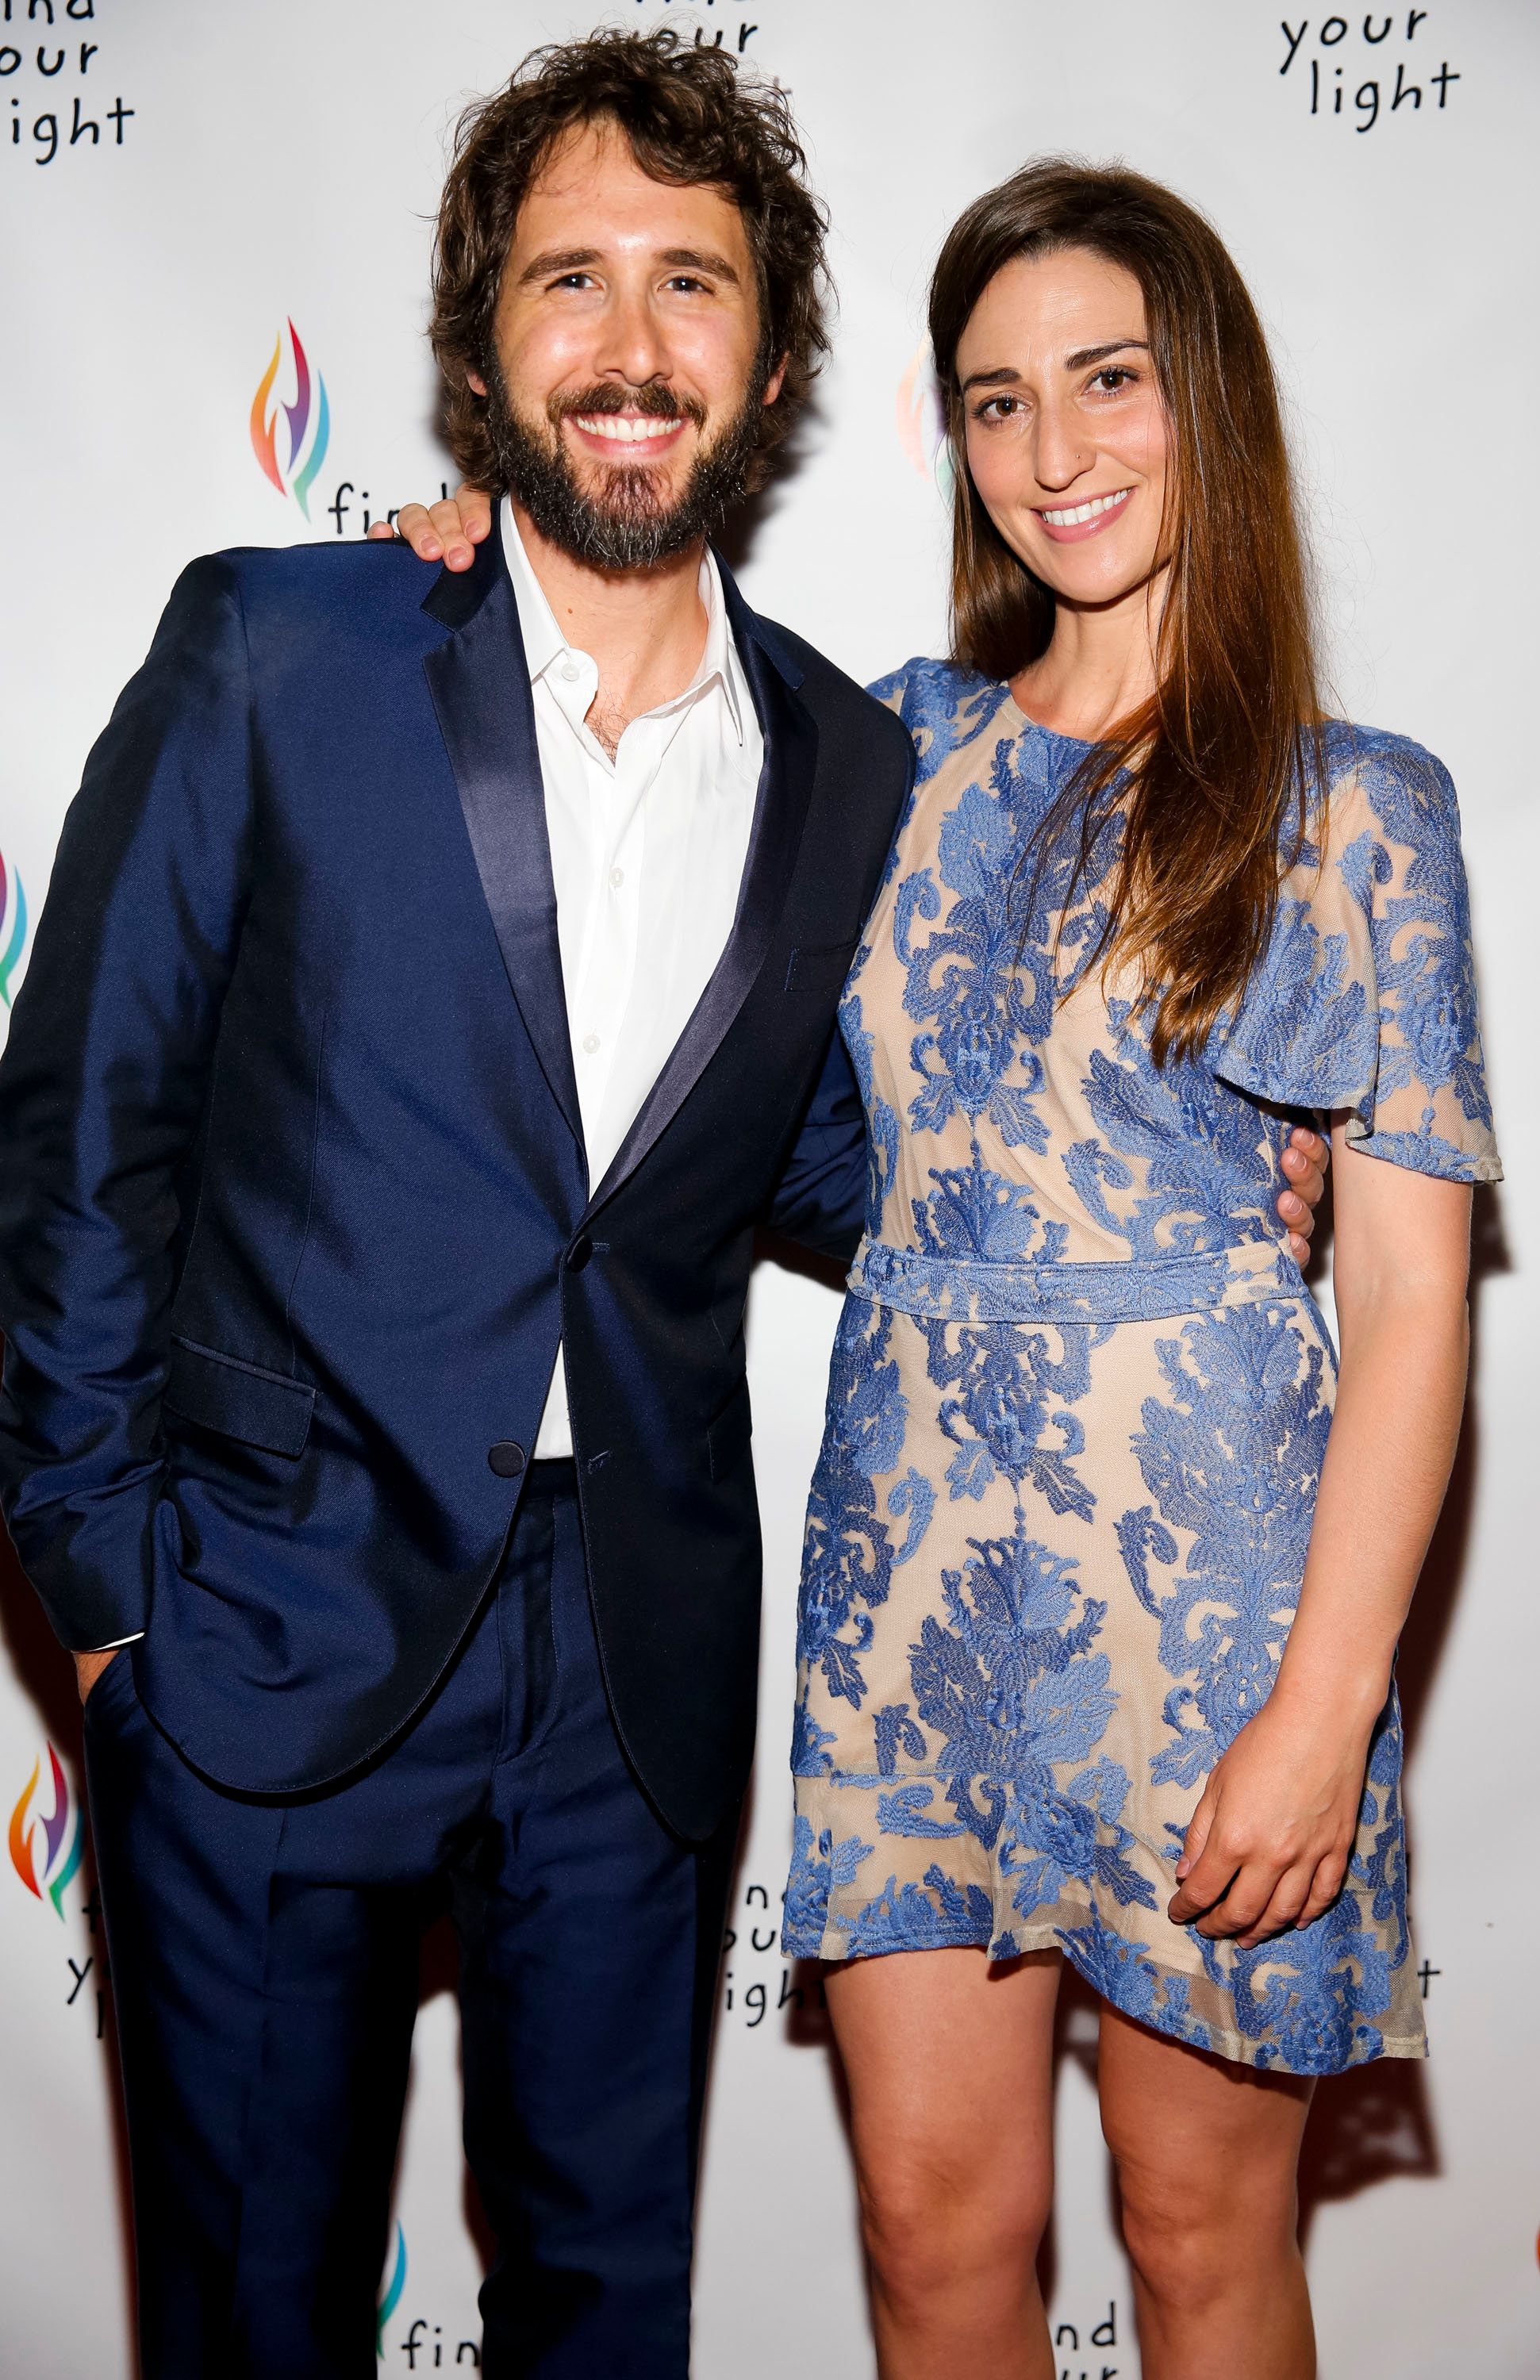 Josh Groban and Sara Bareilles will co-host the Tony Awards at New York's Radio City Music Hall on Sunday, June 10.&nbsp